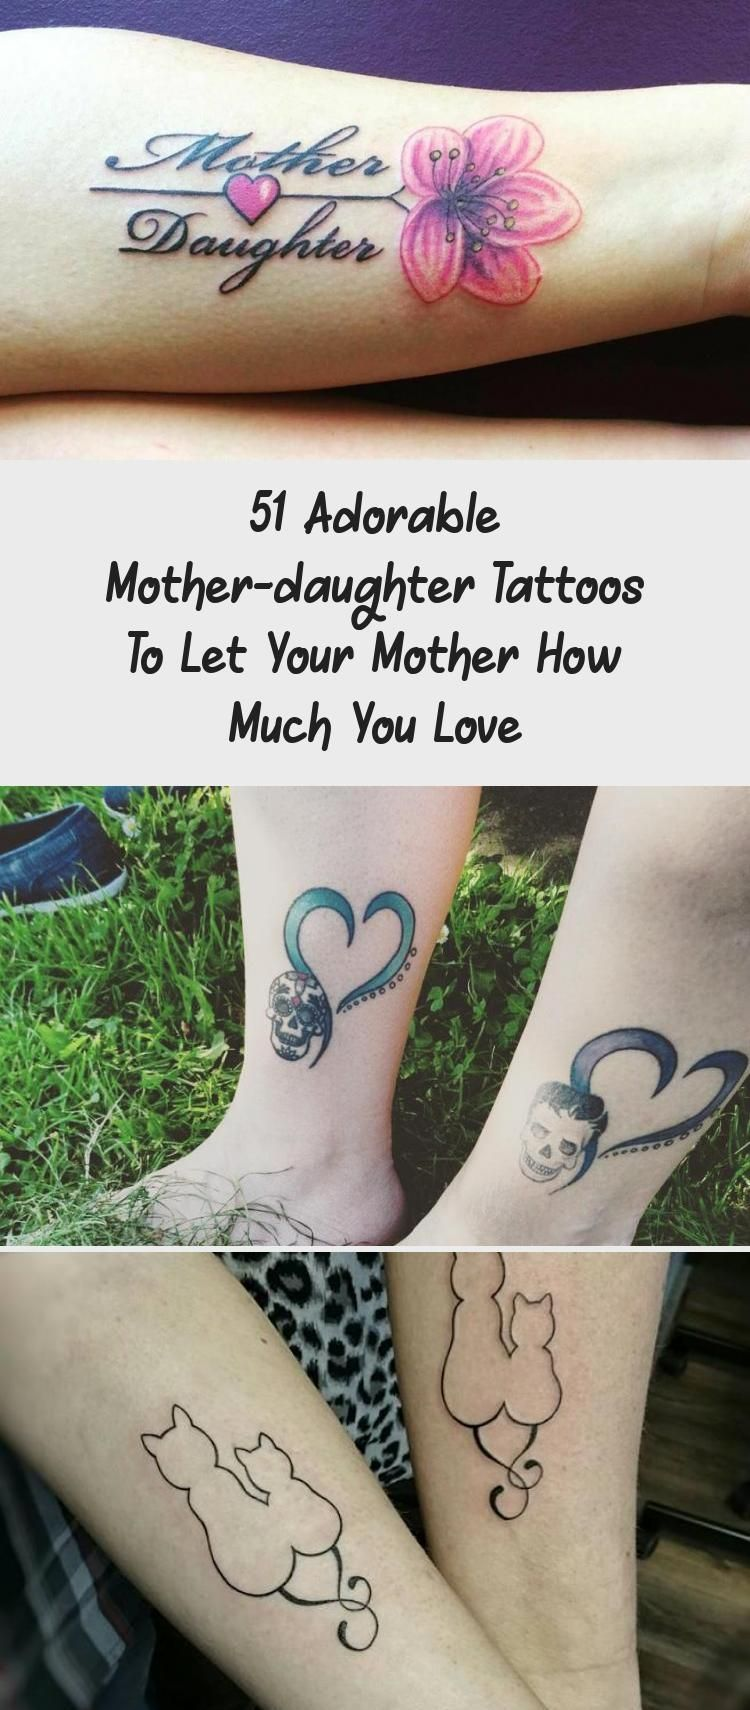 51 Adorable Mother-daughter Tattoos To Let Your Mother How Much You Love – Tattoo